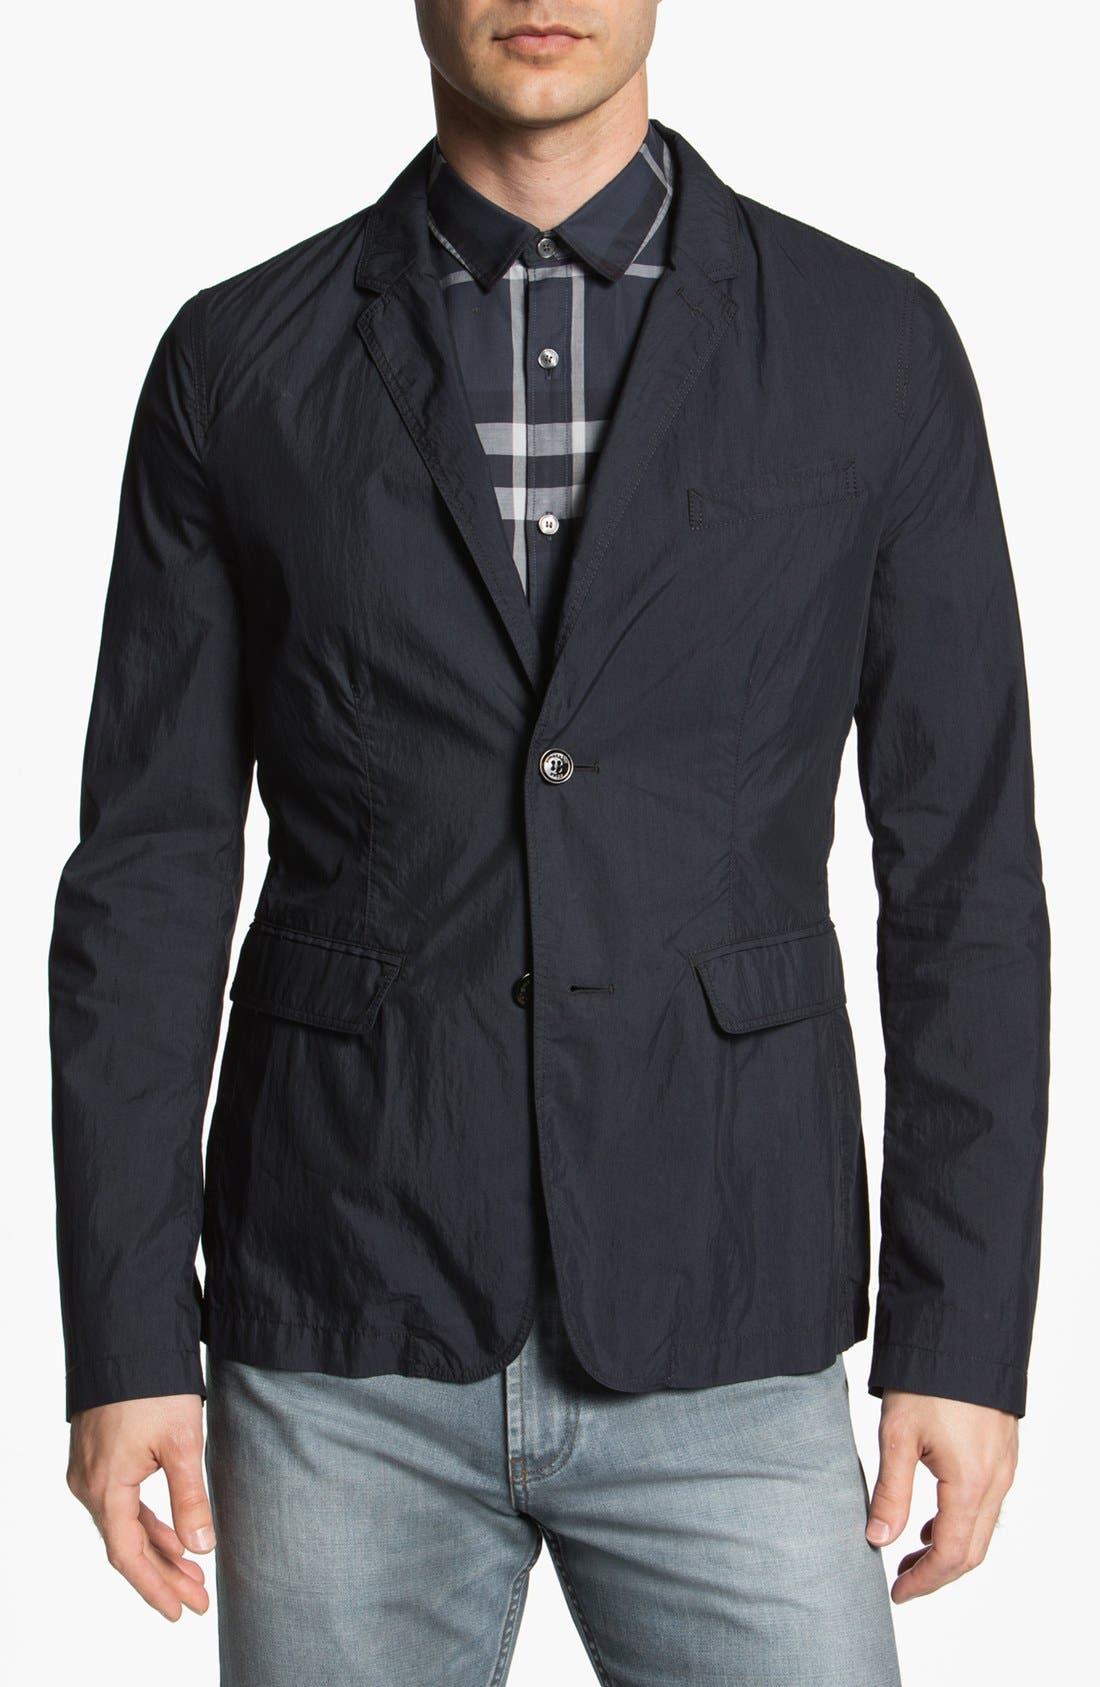 Alternate Image 1 Selected - Burberry Brit 'Wickham' Trim Fit Sportcoat